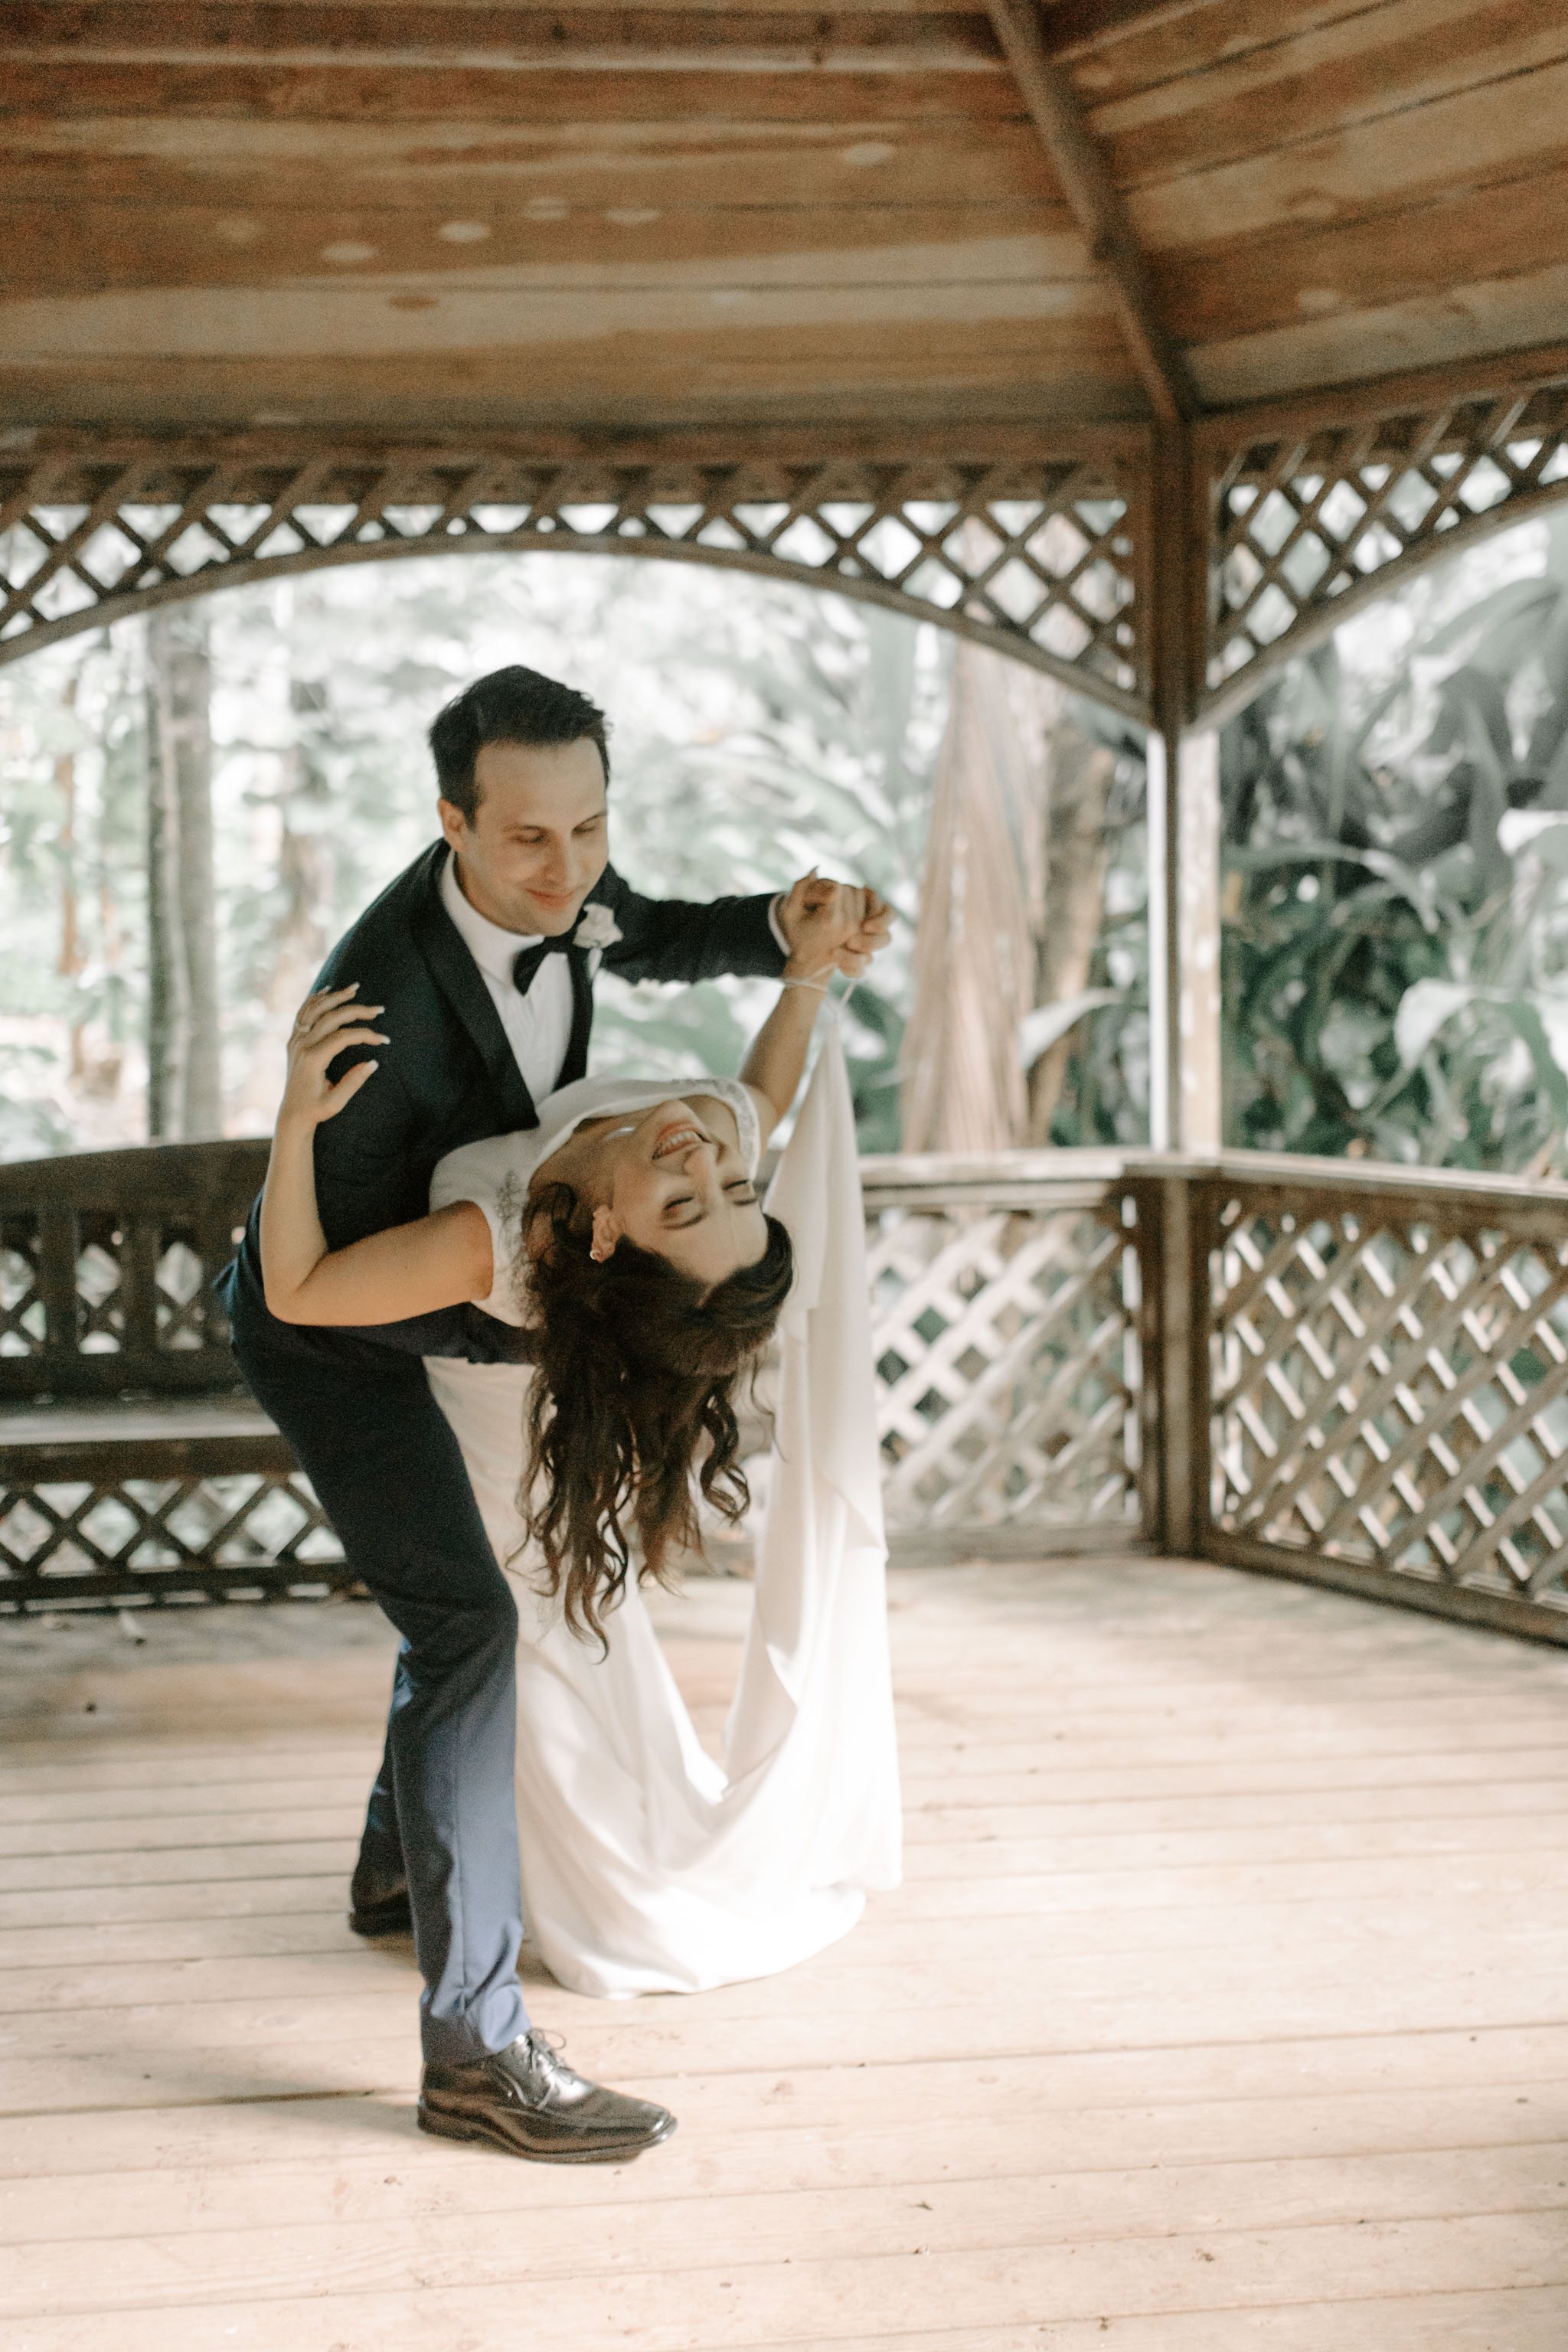 Kauai Elopement First Dance By Hawaii Wedding Photographer Desiree Leilani